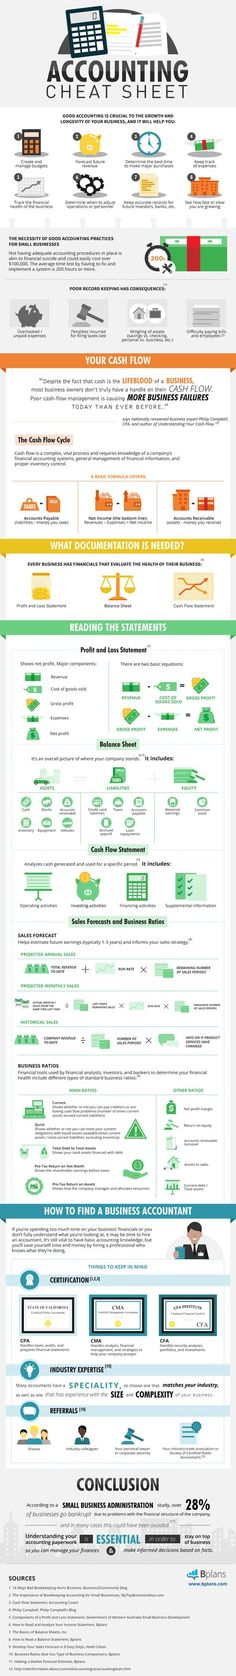 #Accounting Cheat Sheet #Infographics